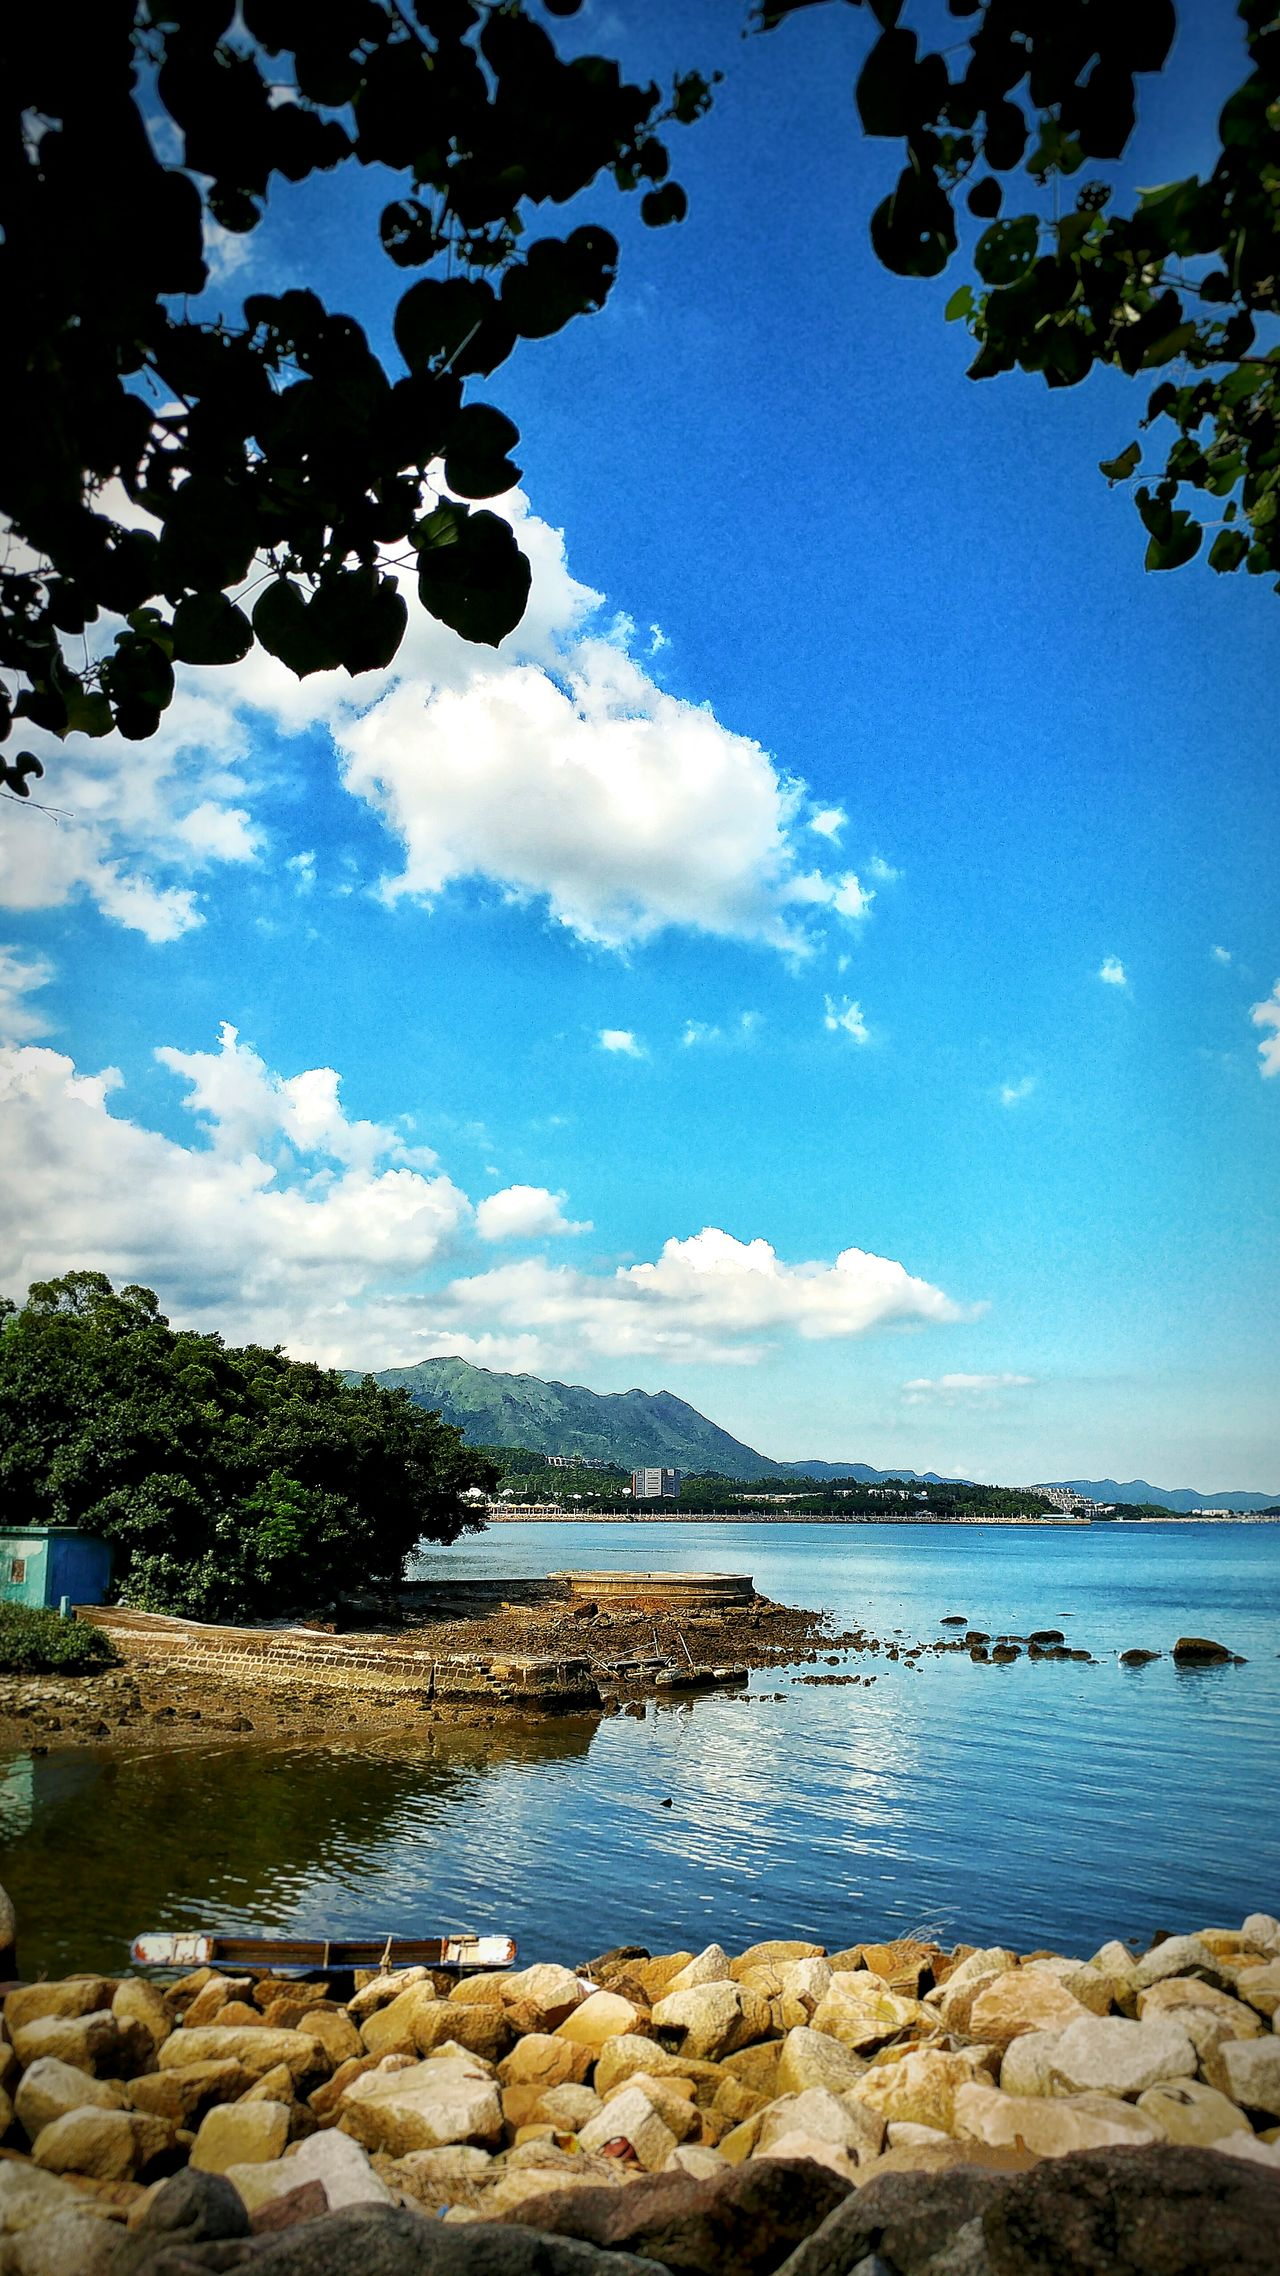 Blue blue blue. 2016 Daily Hangout Taking Photos Photography Relax Enjoying Life Enjoy The Sky View Life Lifestyles Sky Blue Blue Sky Hot Summer Summer Peaceful Silence Take By Lg G5 HongKong TaiPo Tolo Harbour 大埔 吐露港